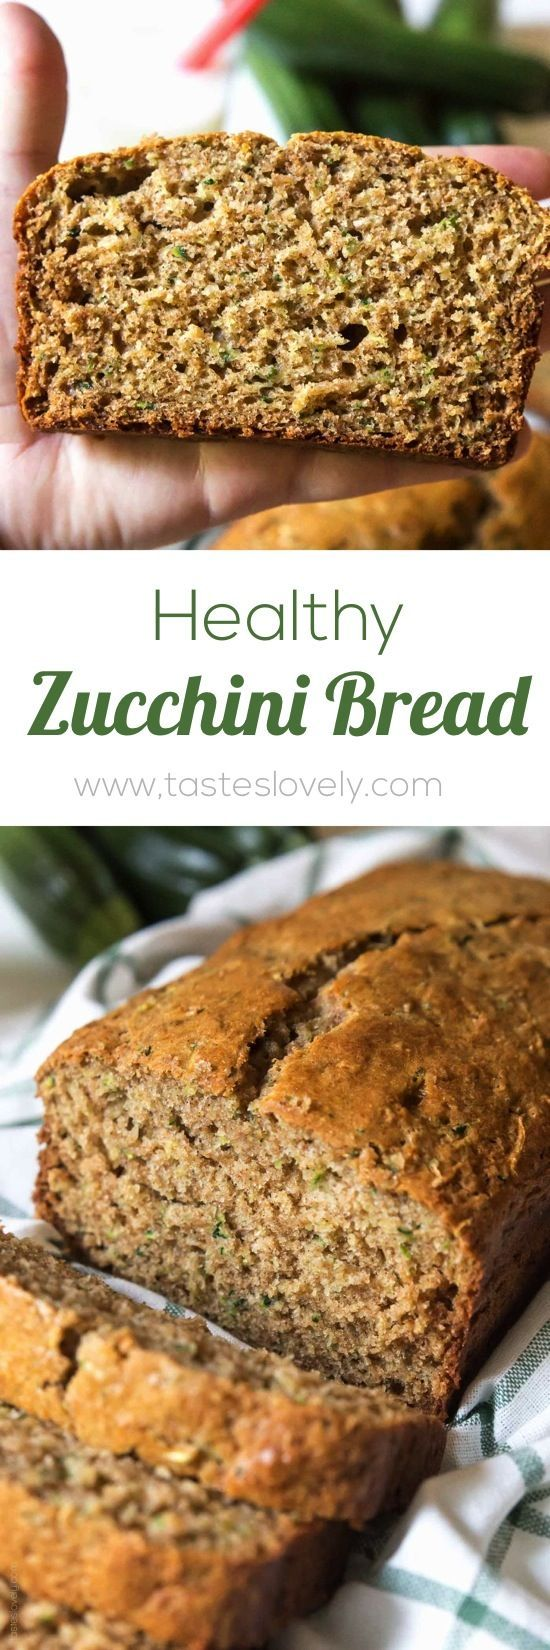 Zucchini Bread Recipe - made with half the amount of sugar, whole wheat flour, greek yogurt & coconut oil. A healthier zucchini bread you can enjoy without the guilt!